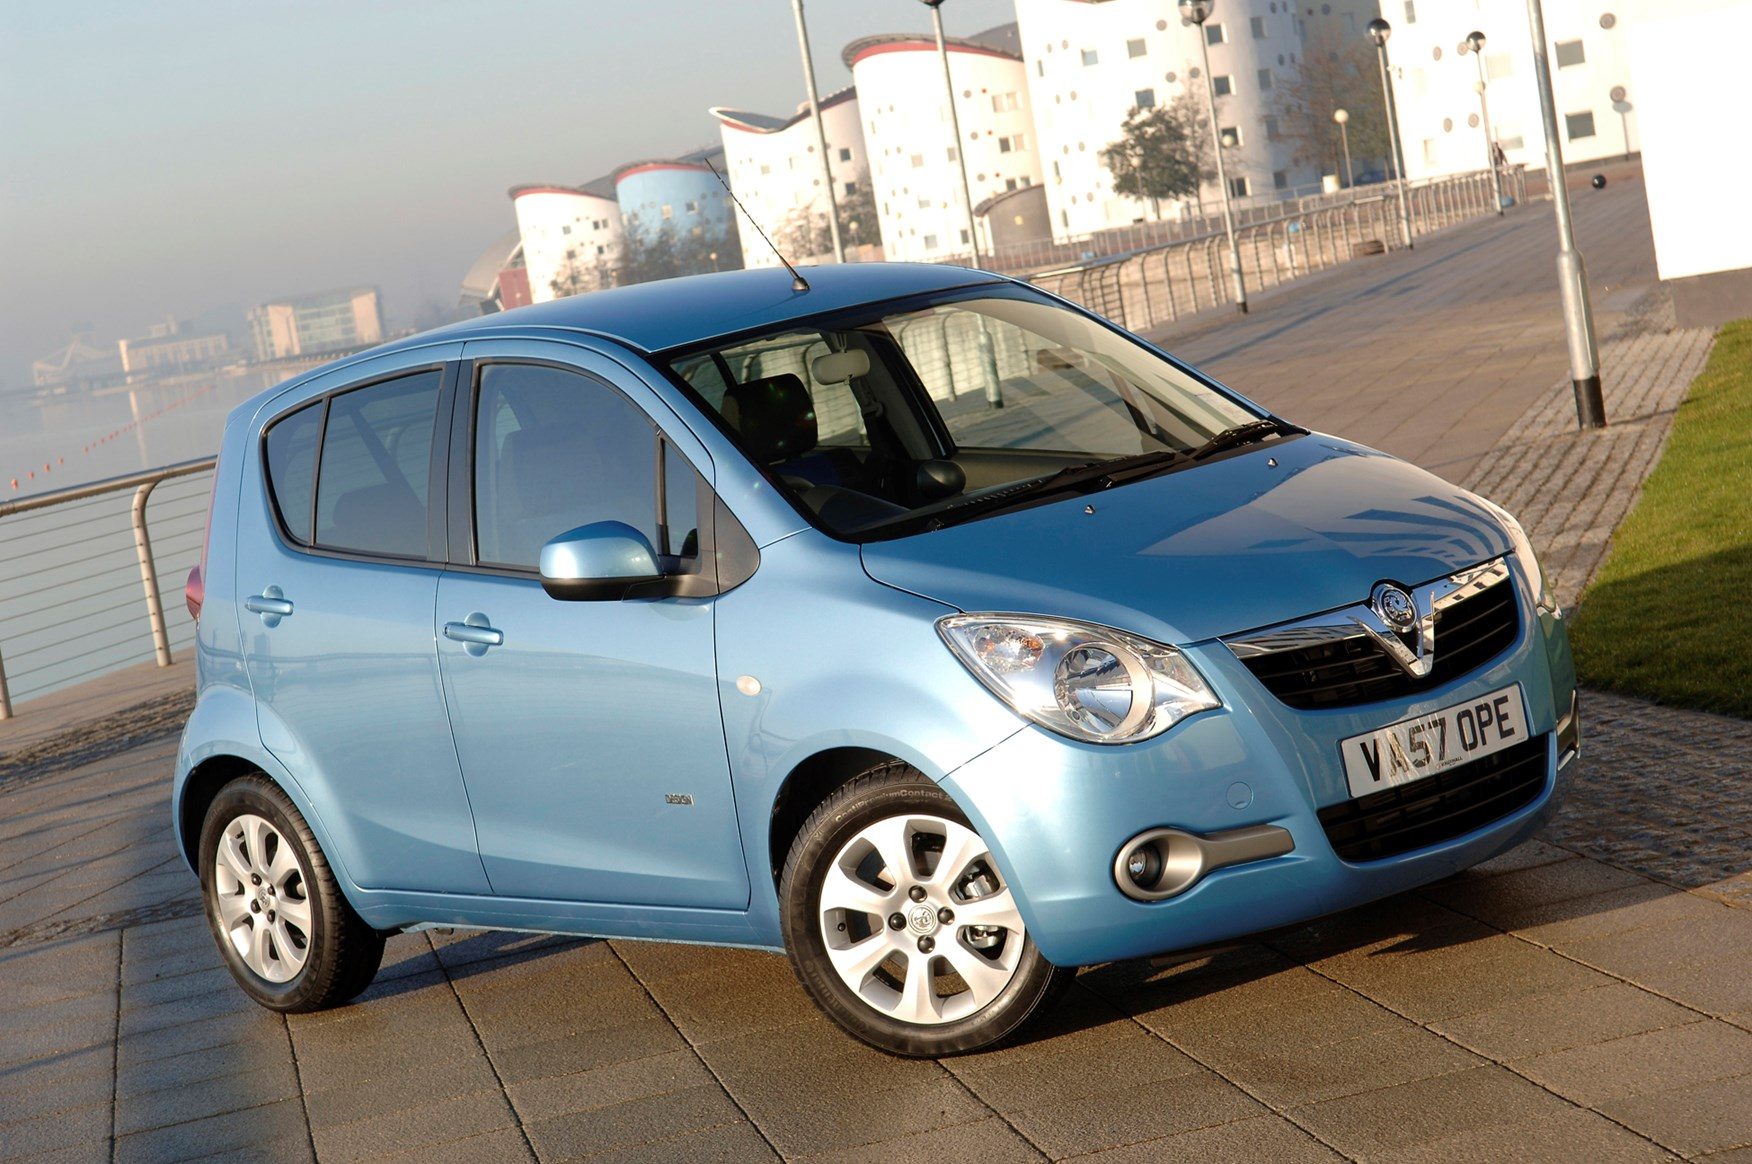 Used Vauxhall Agila Estate (2008 - 2013) Review | Parkers